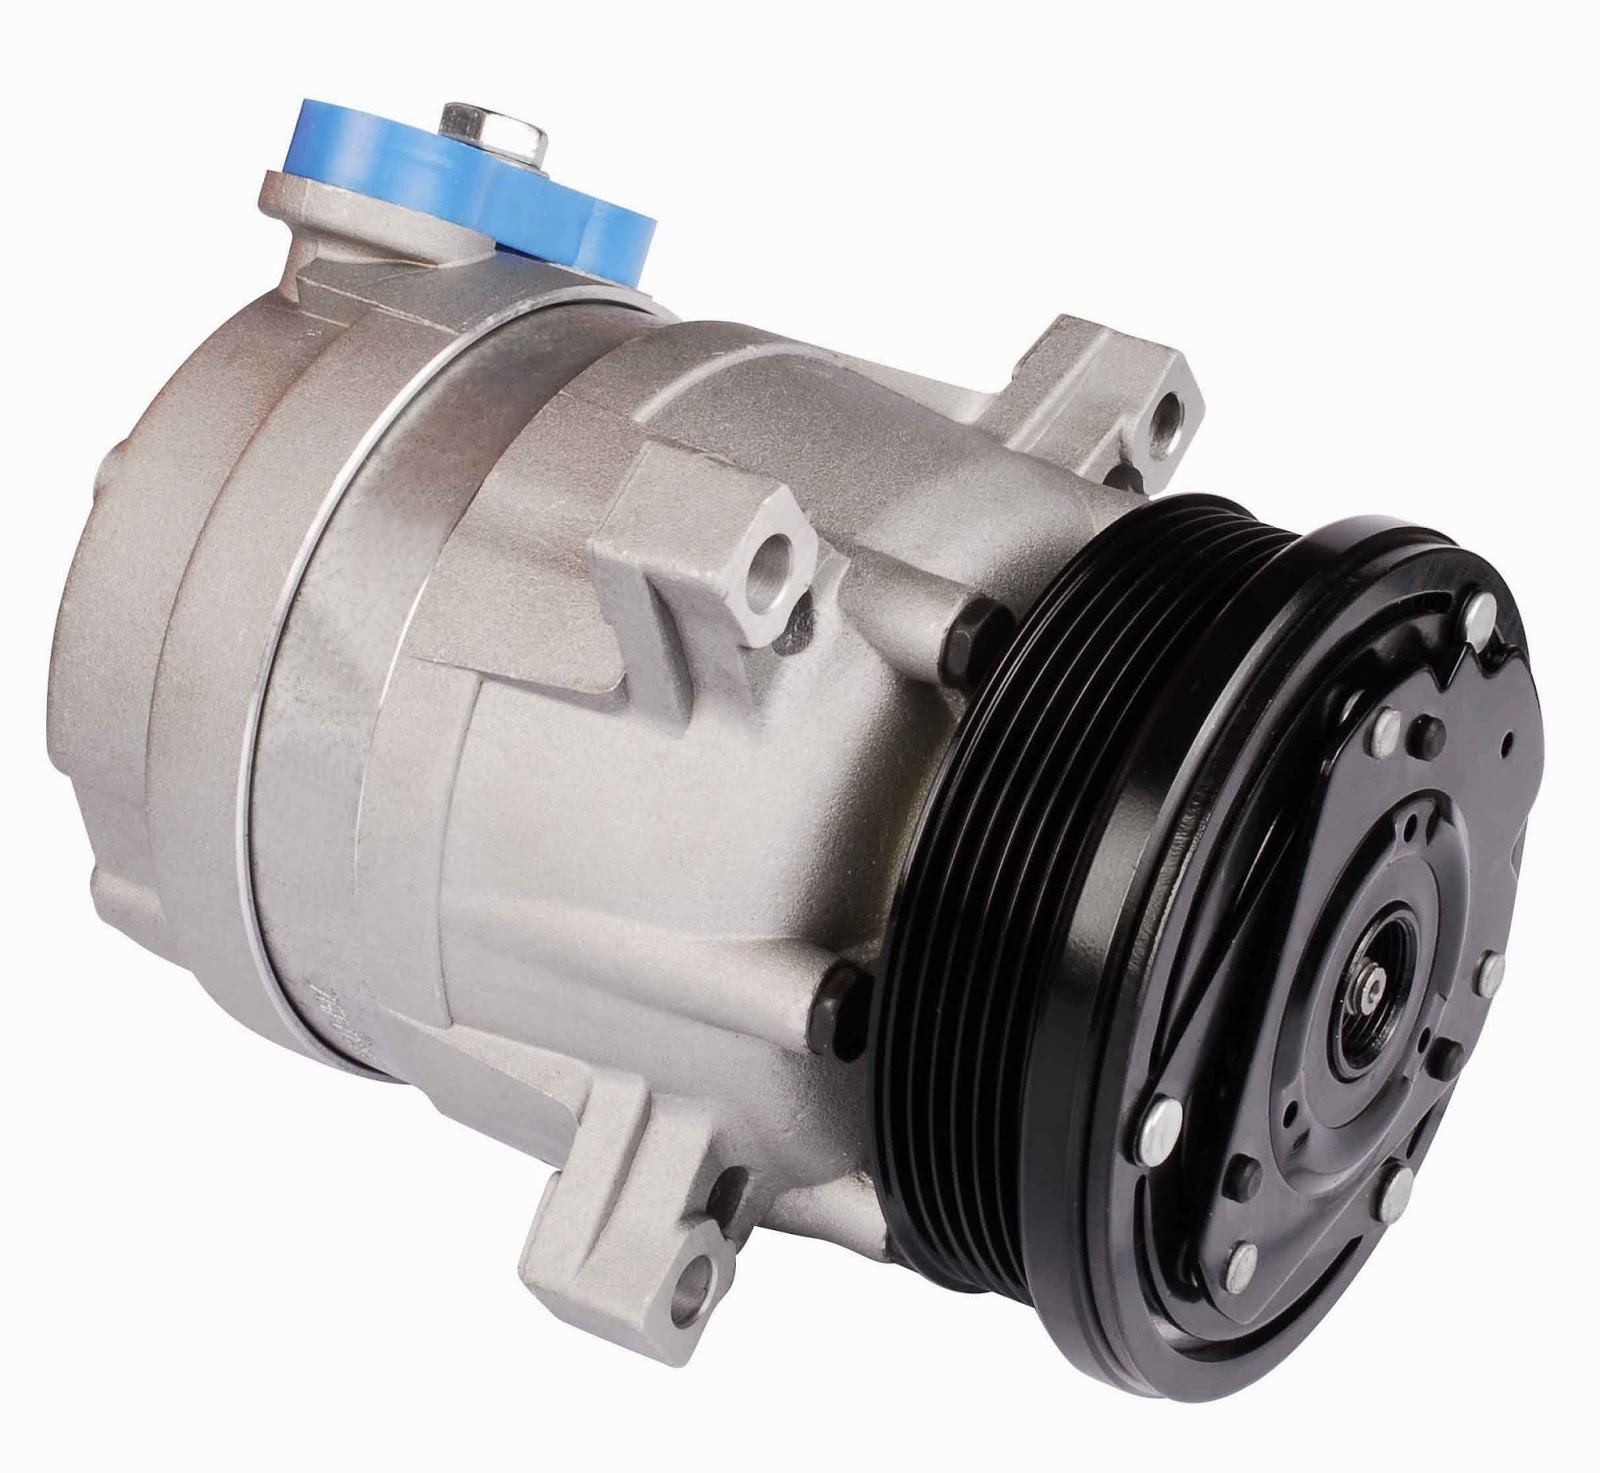 Car Aircon Compressor Parts